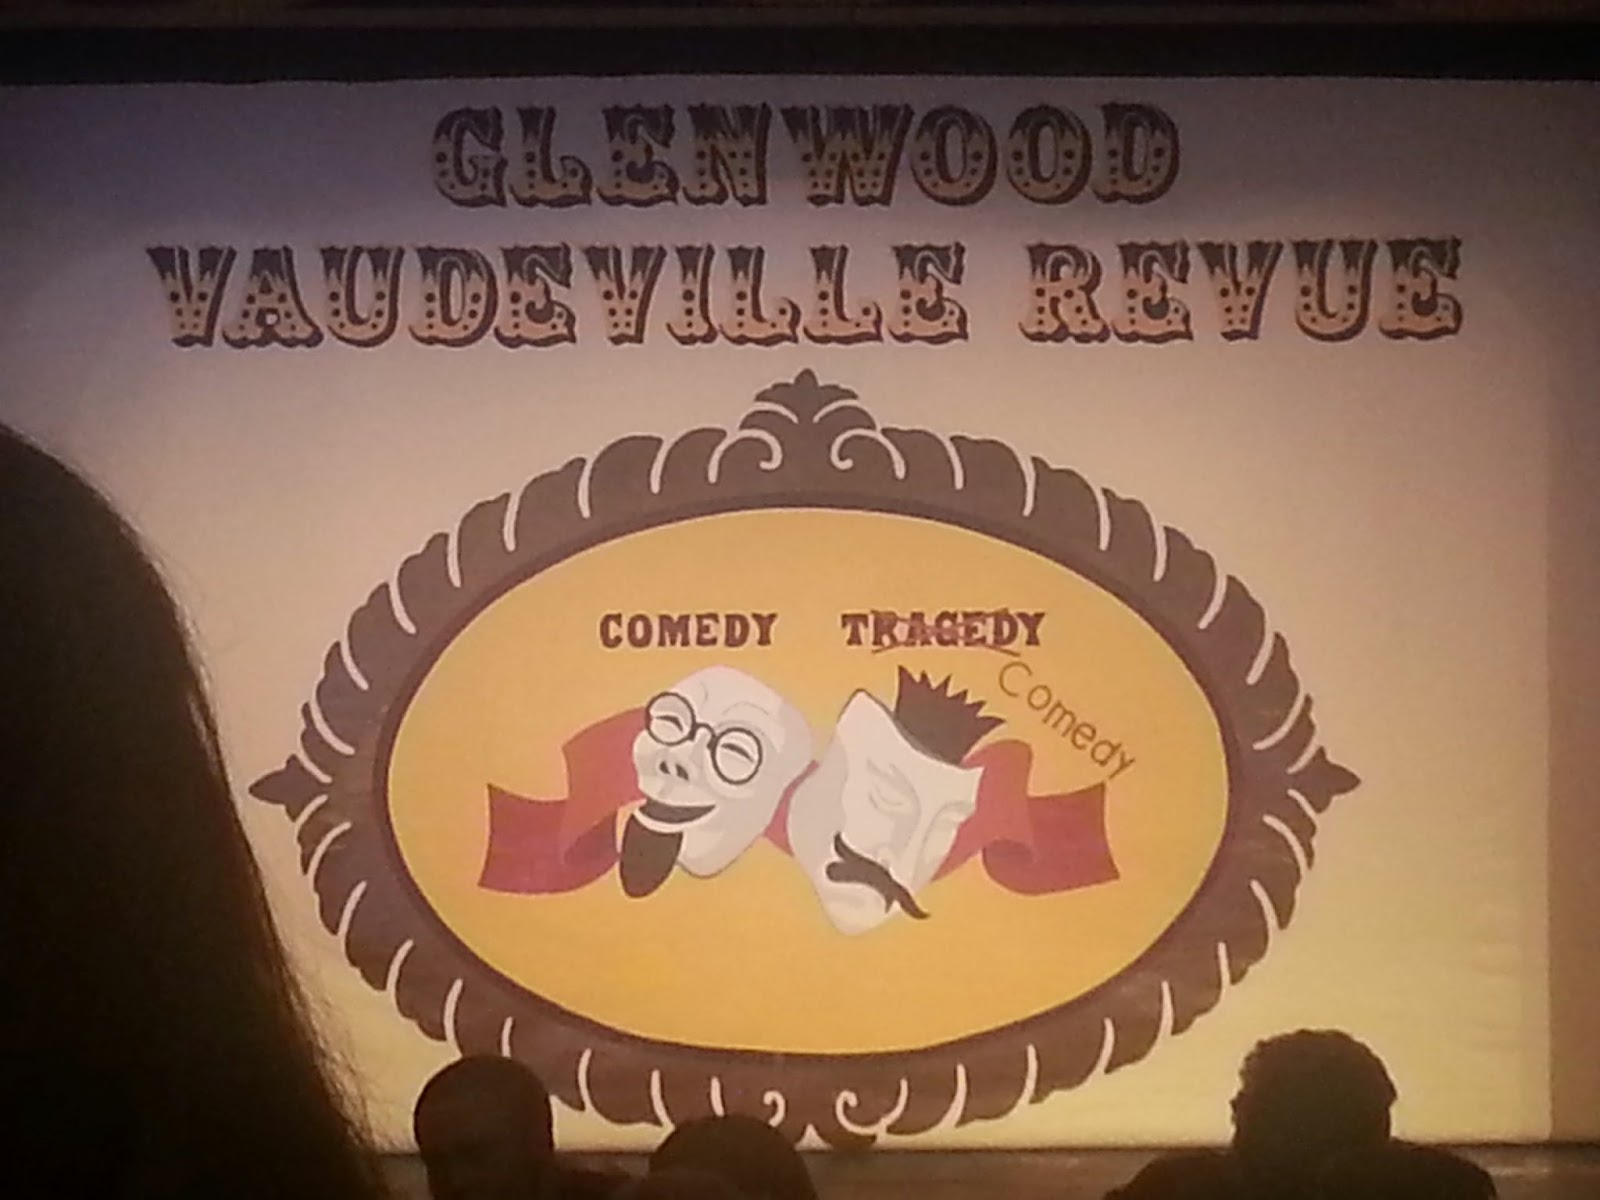 Activities near Aspen, Co - Glenwood Vaudeville Theater Review